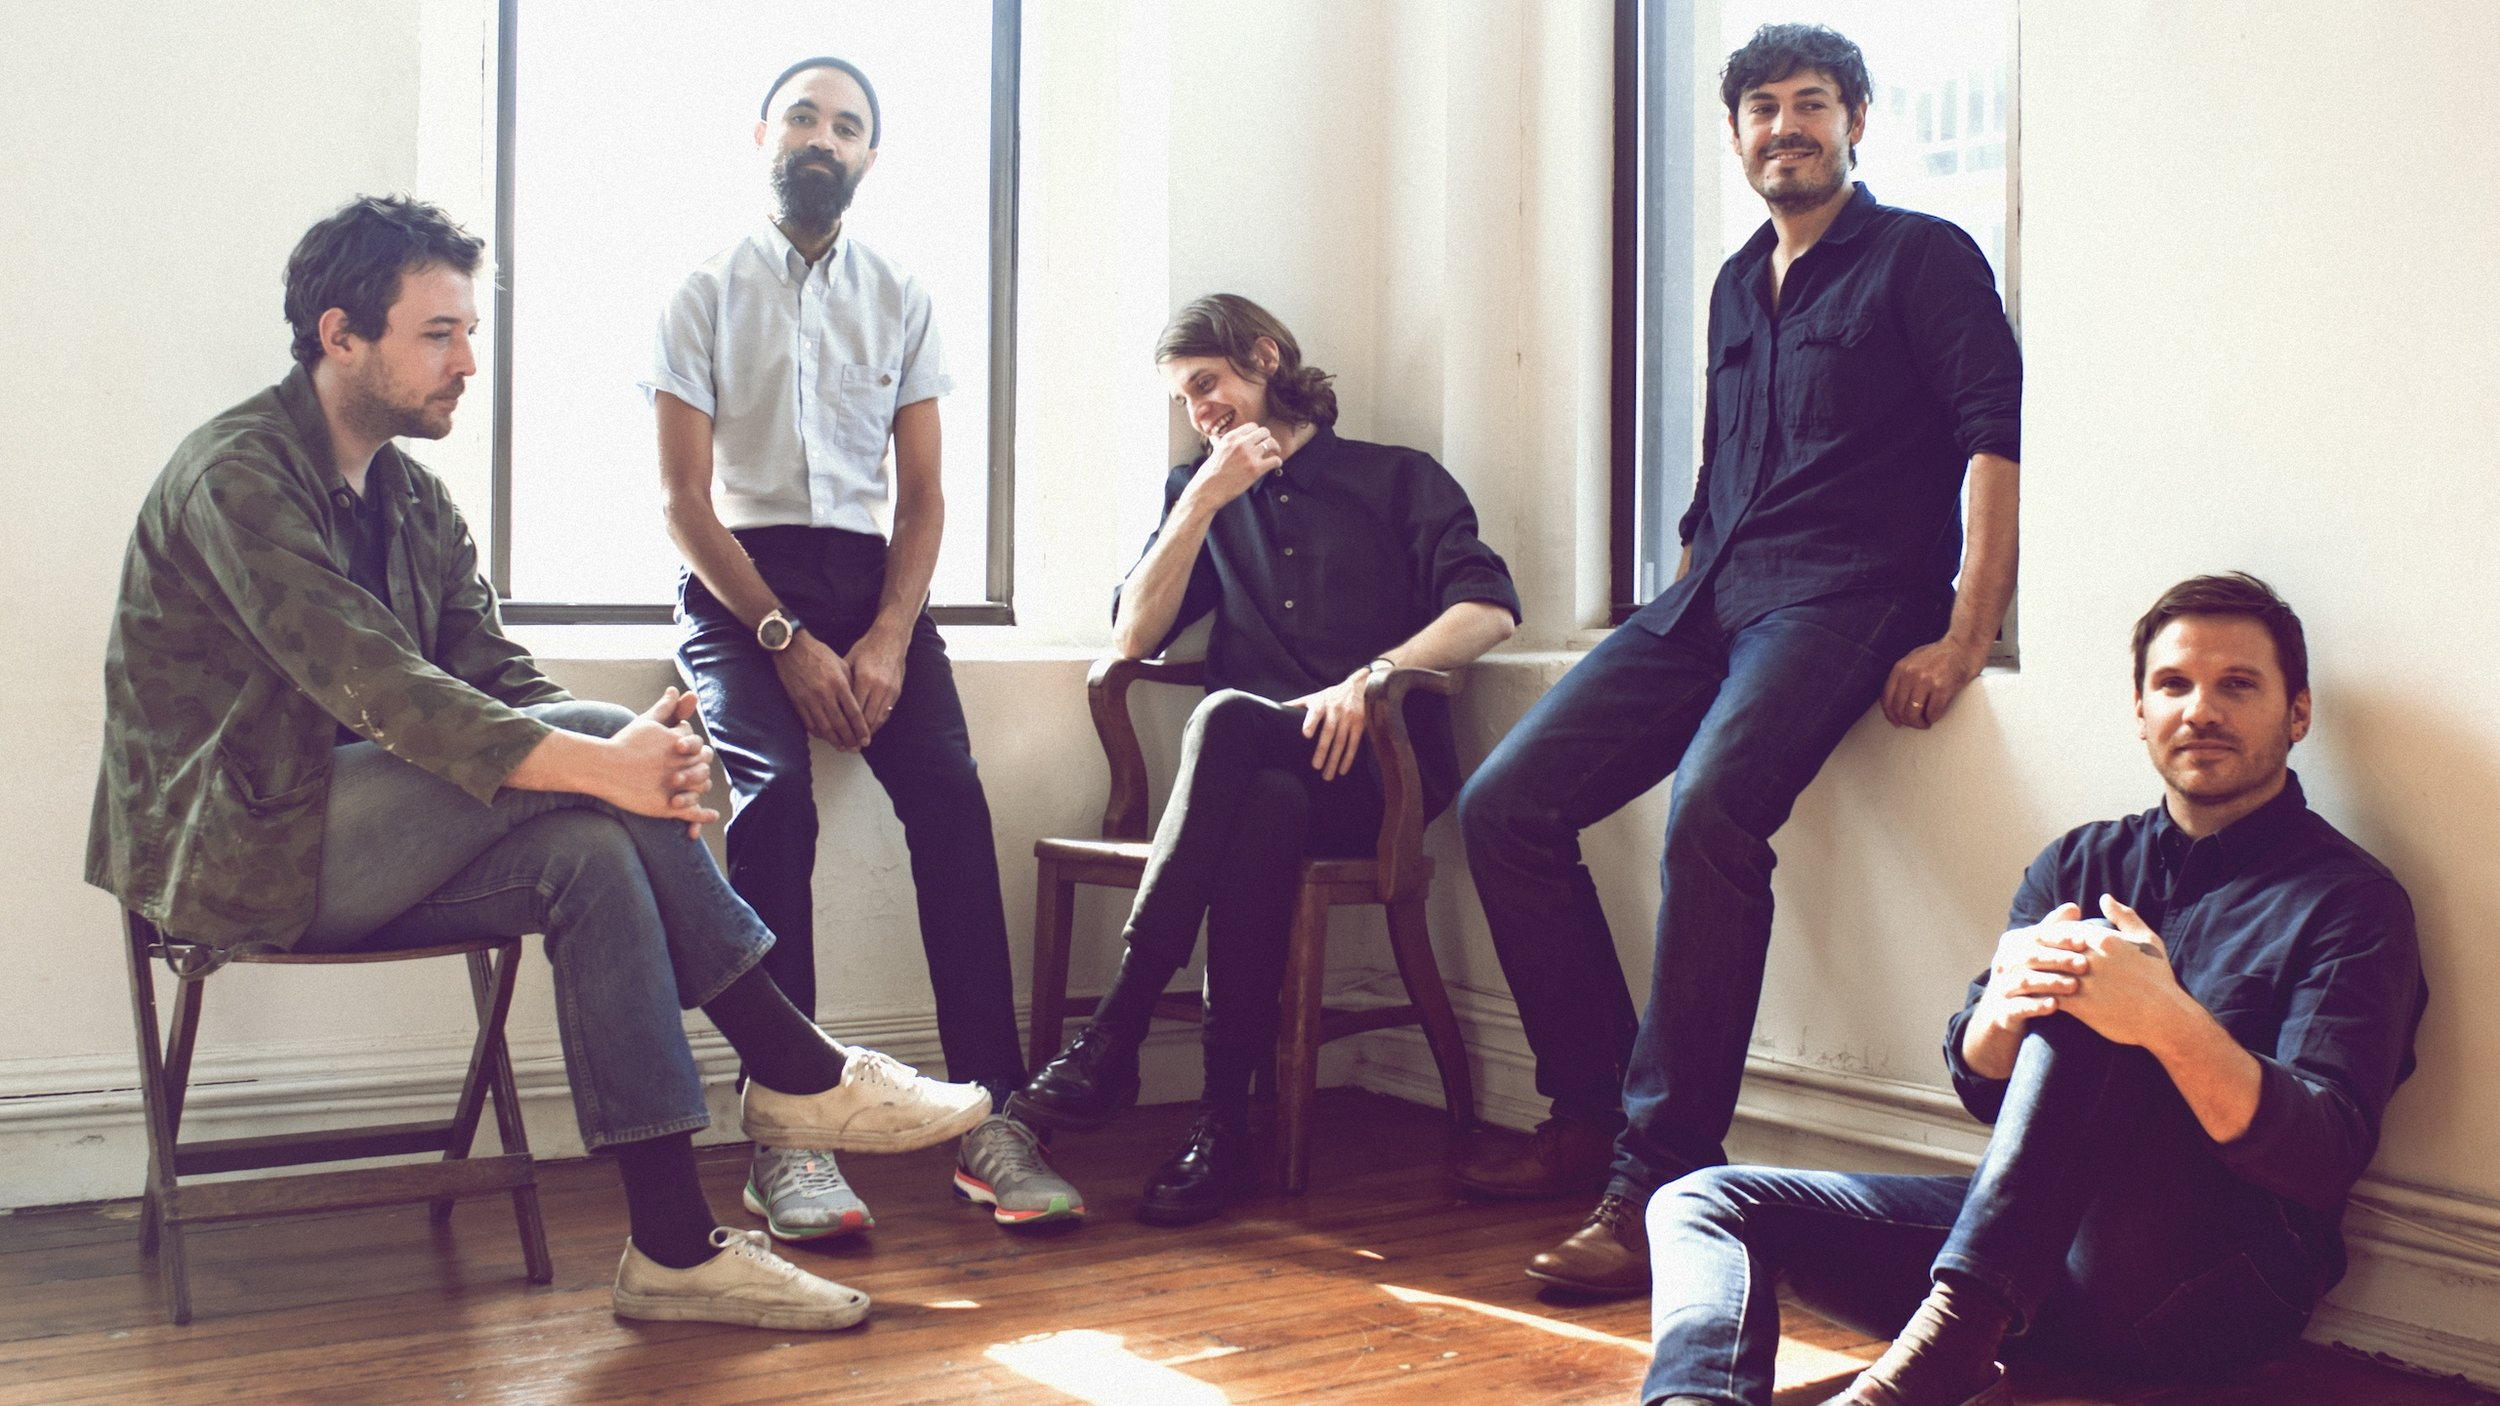 Fleet Foxes' remaining five return with a new album